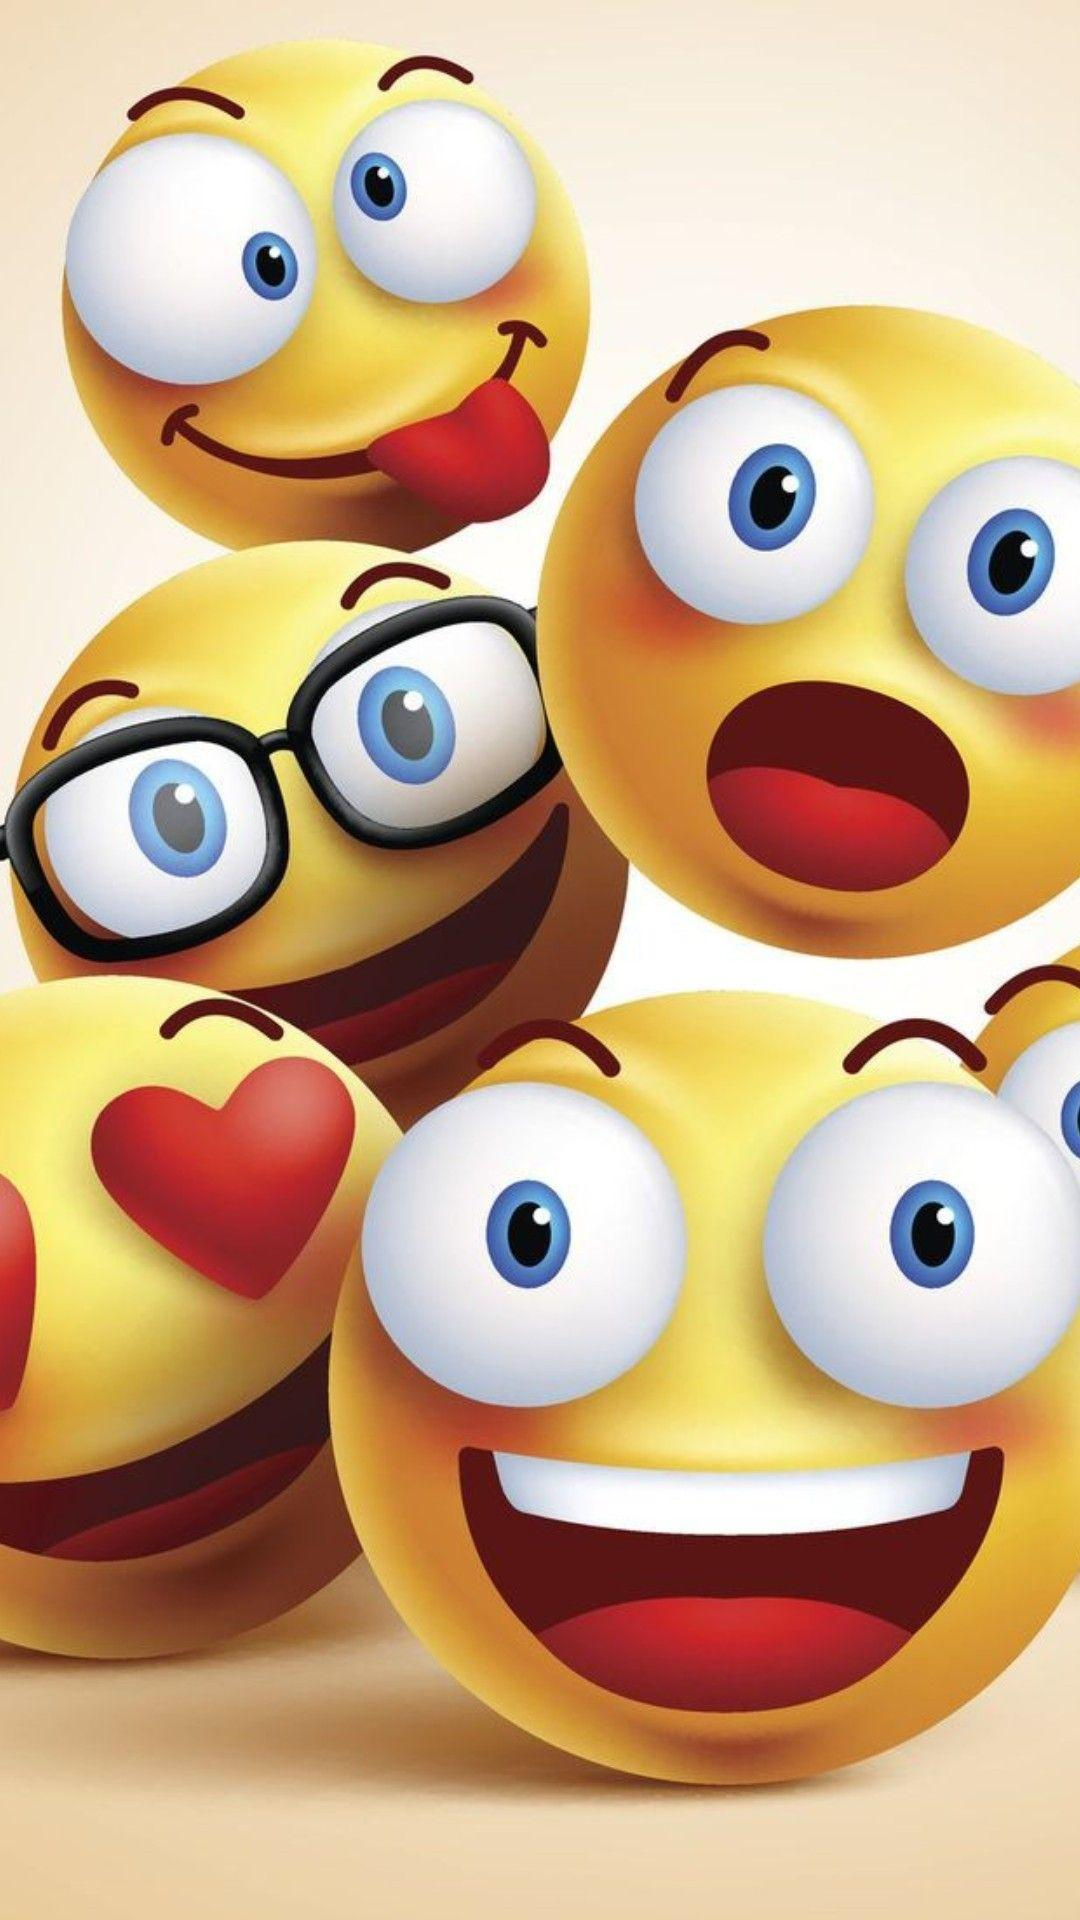 Cute Emojis As Your New Wallpaper picture